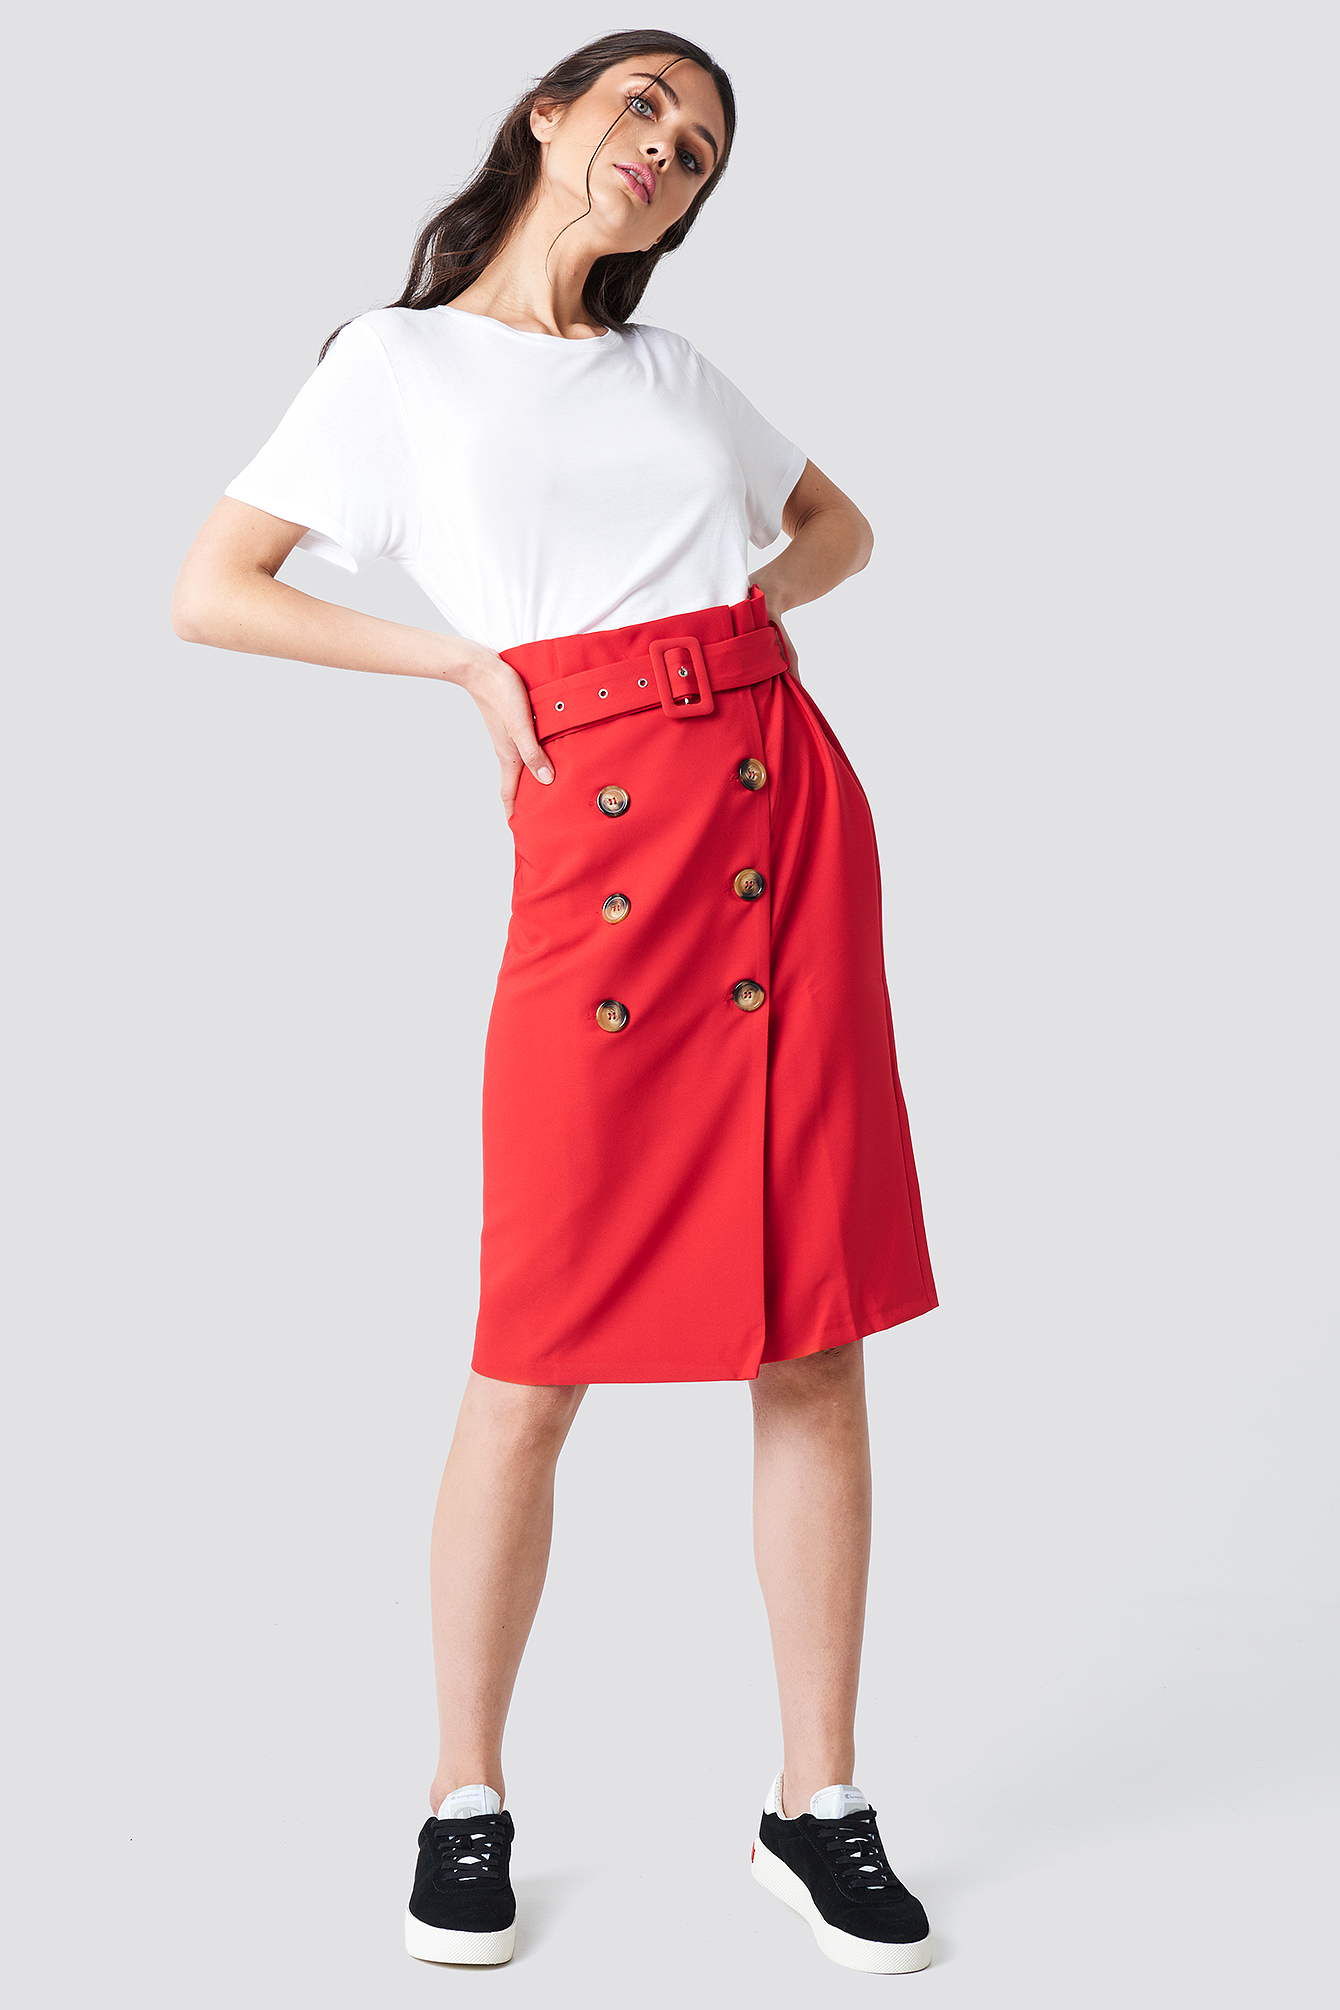 BUTTON DETAILED MIDI SKIRT - RED